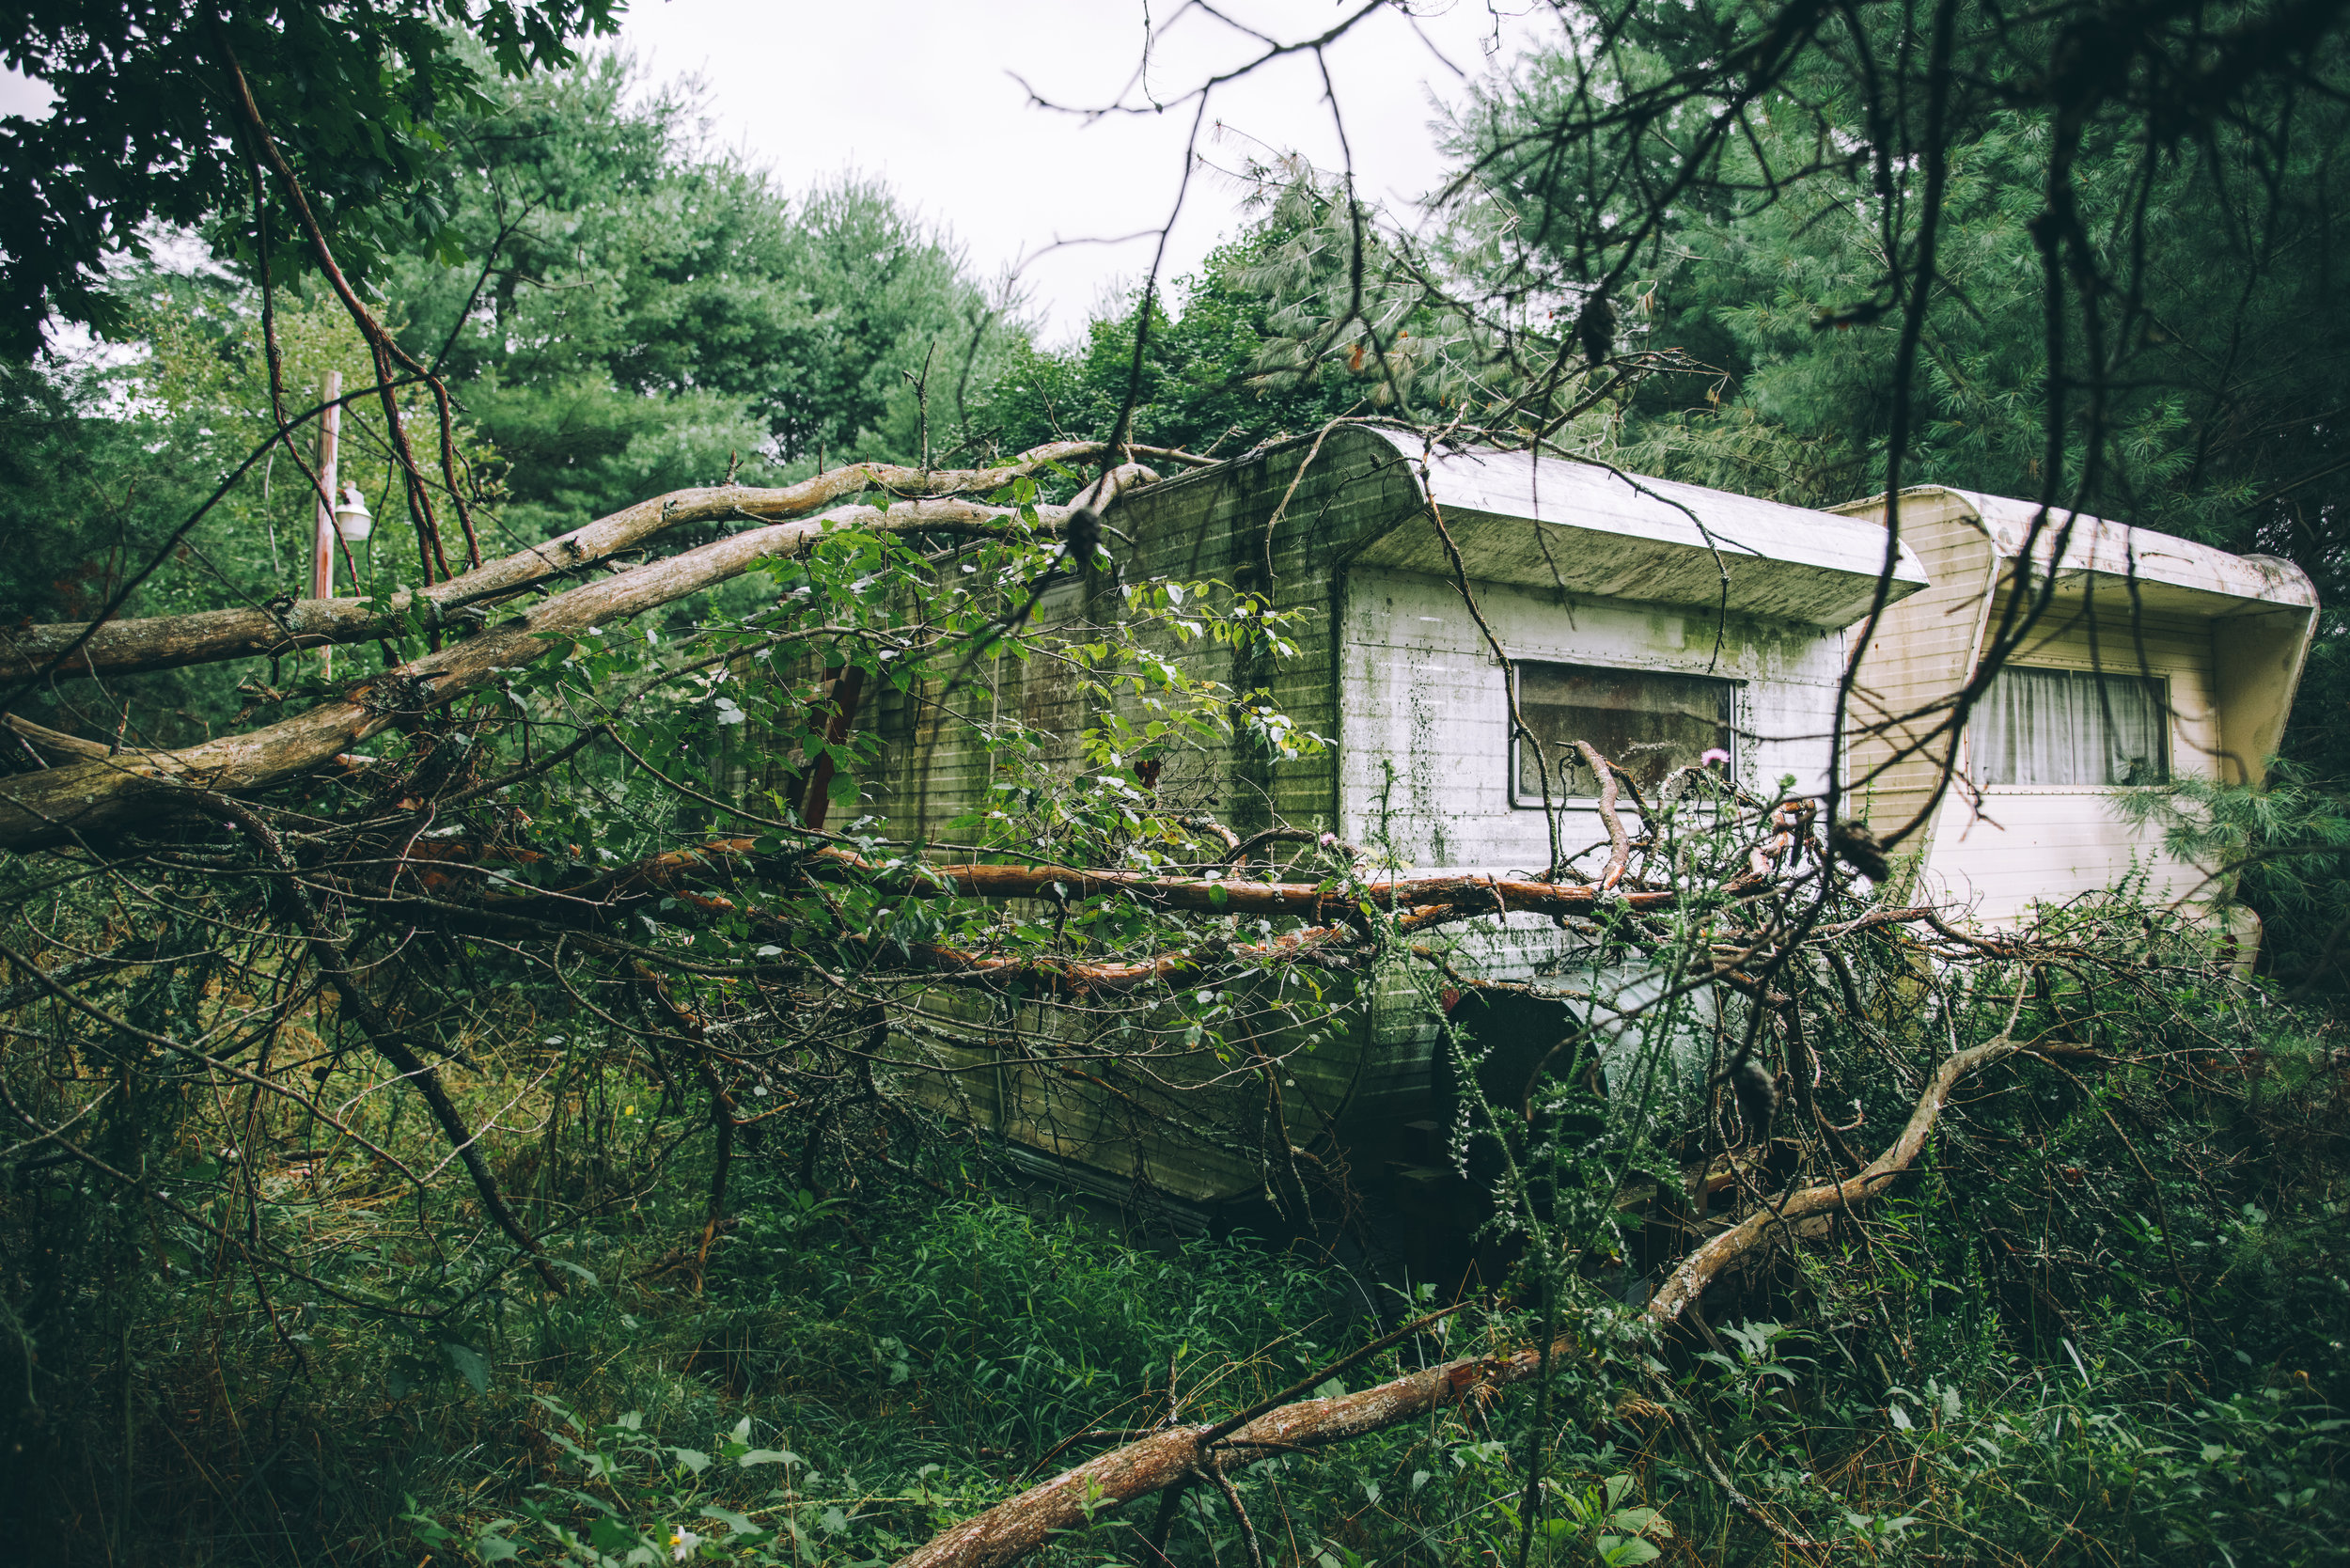 pictured above: two mobile homes sit abandoned in the woods of rural VA.